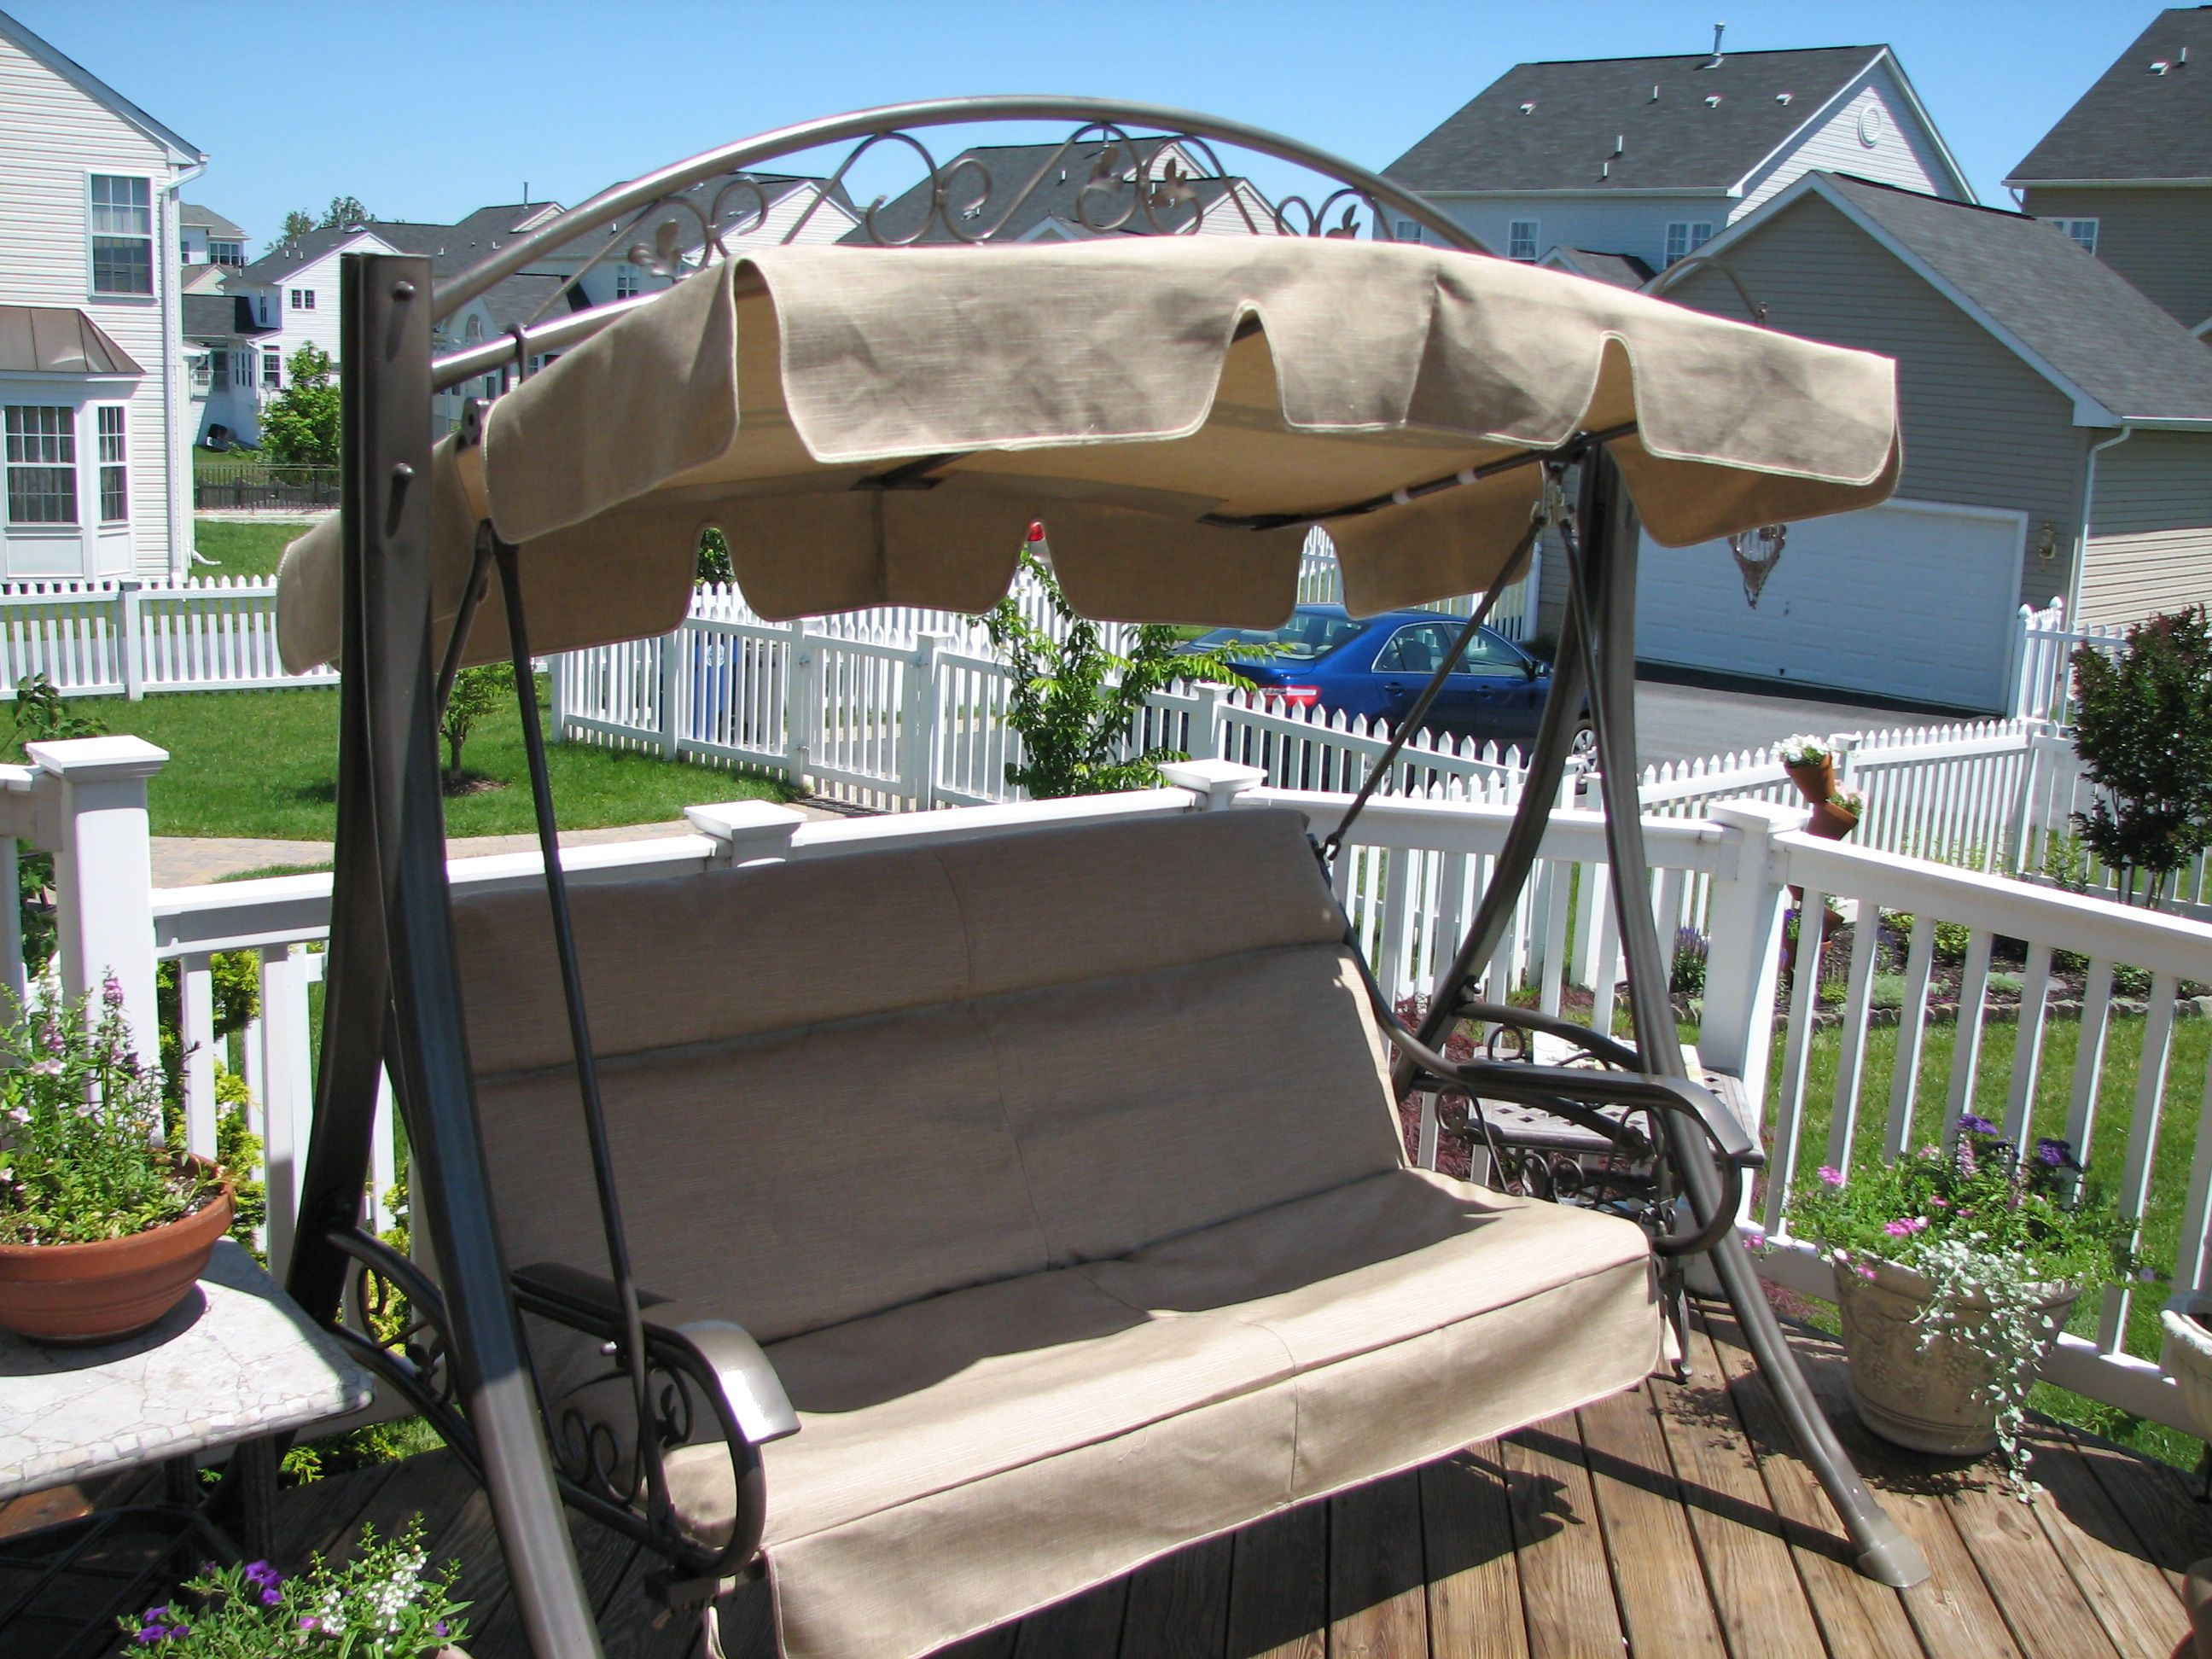 Remarkable Costco Patio Swing Refurbished Heather Beige Canopy 165 Home Interior And Landscaping Ologienasavecom